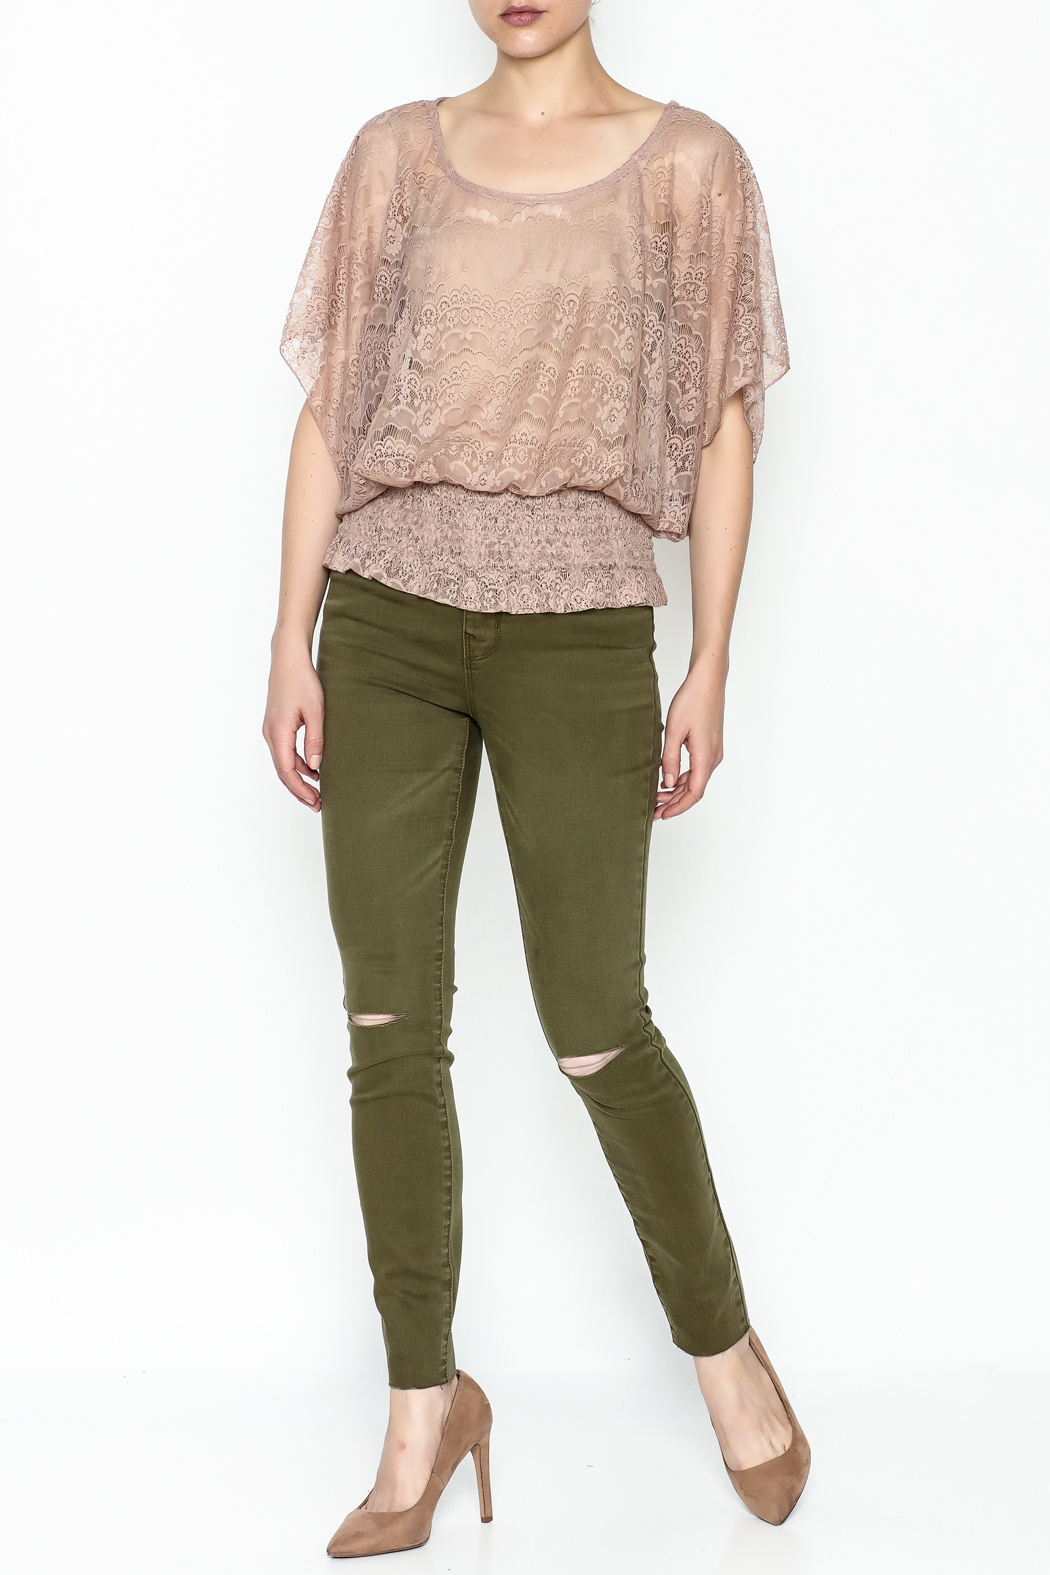 Cecico Lace Smocked Top - Side Cropped Image